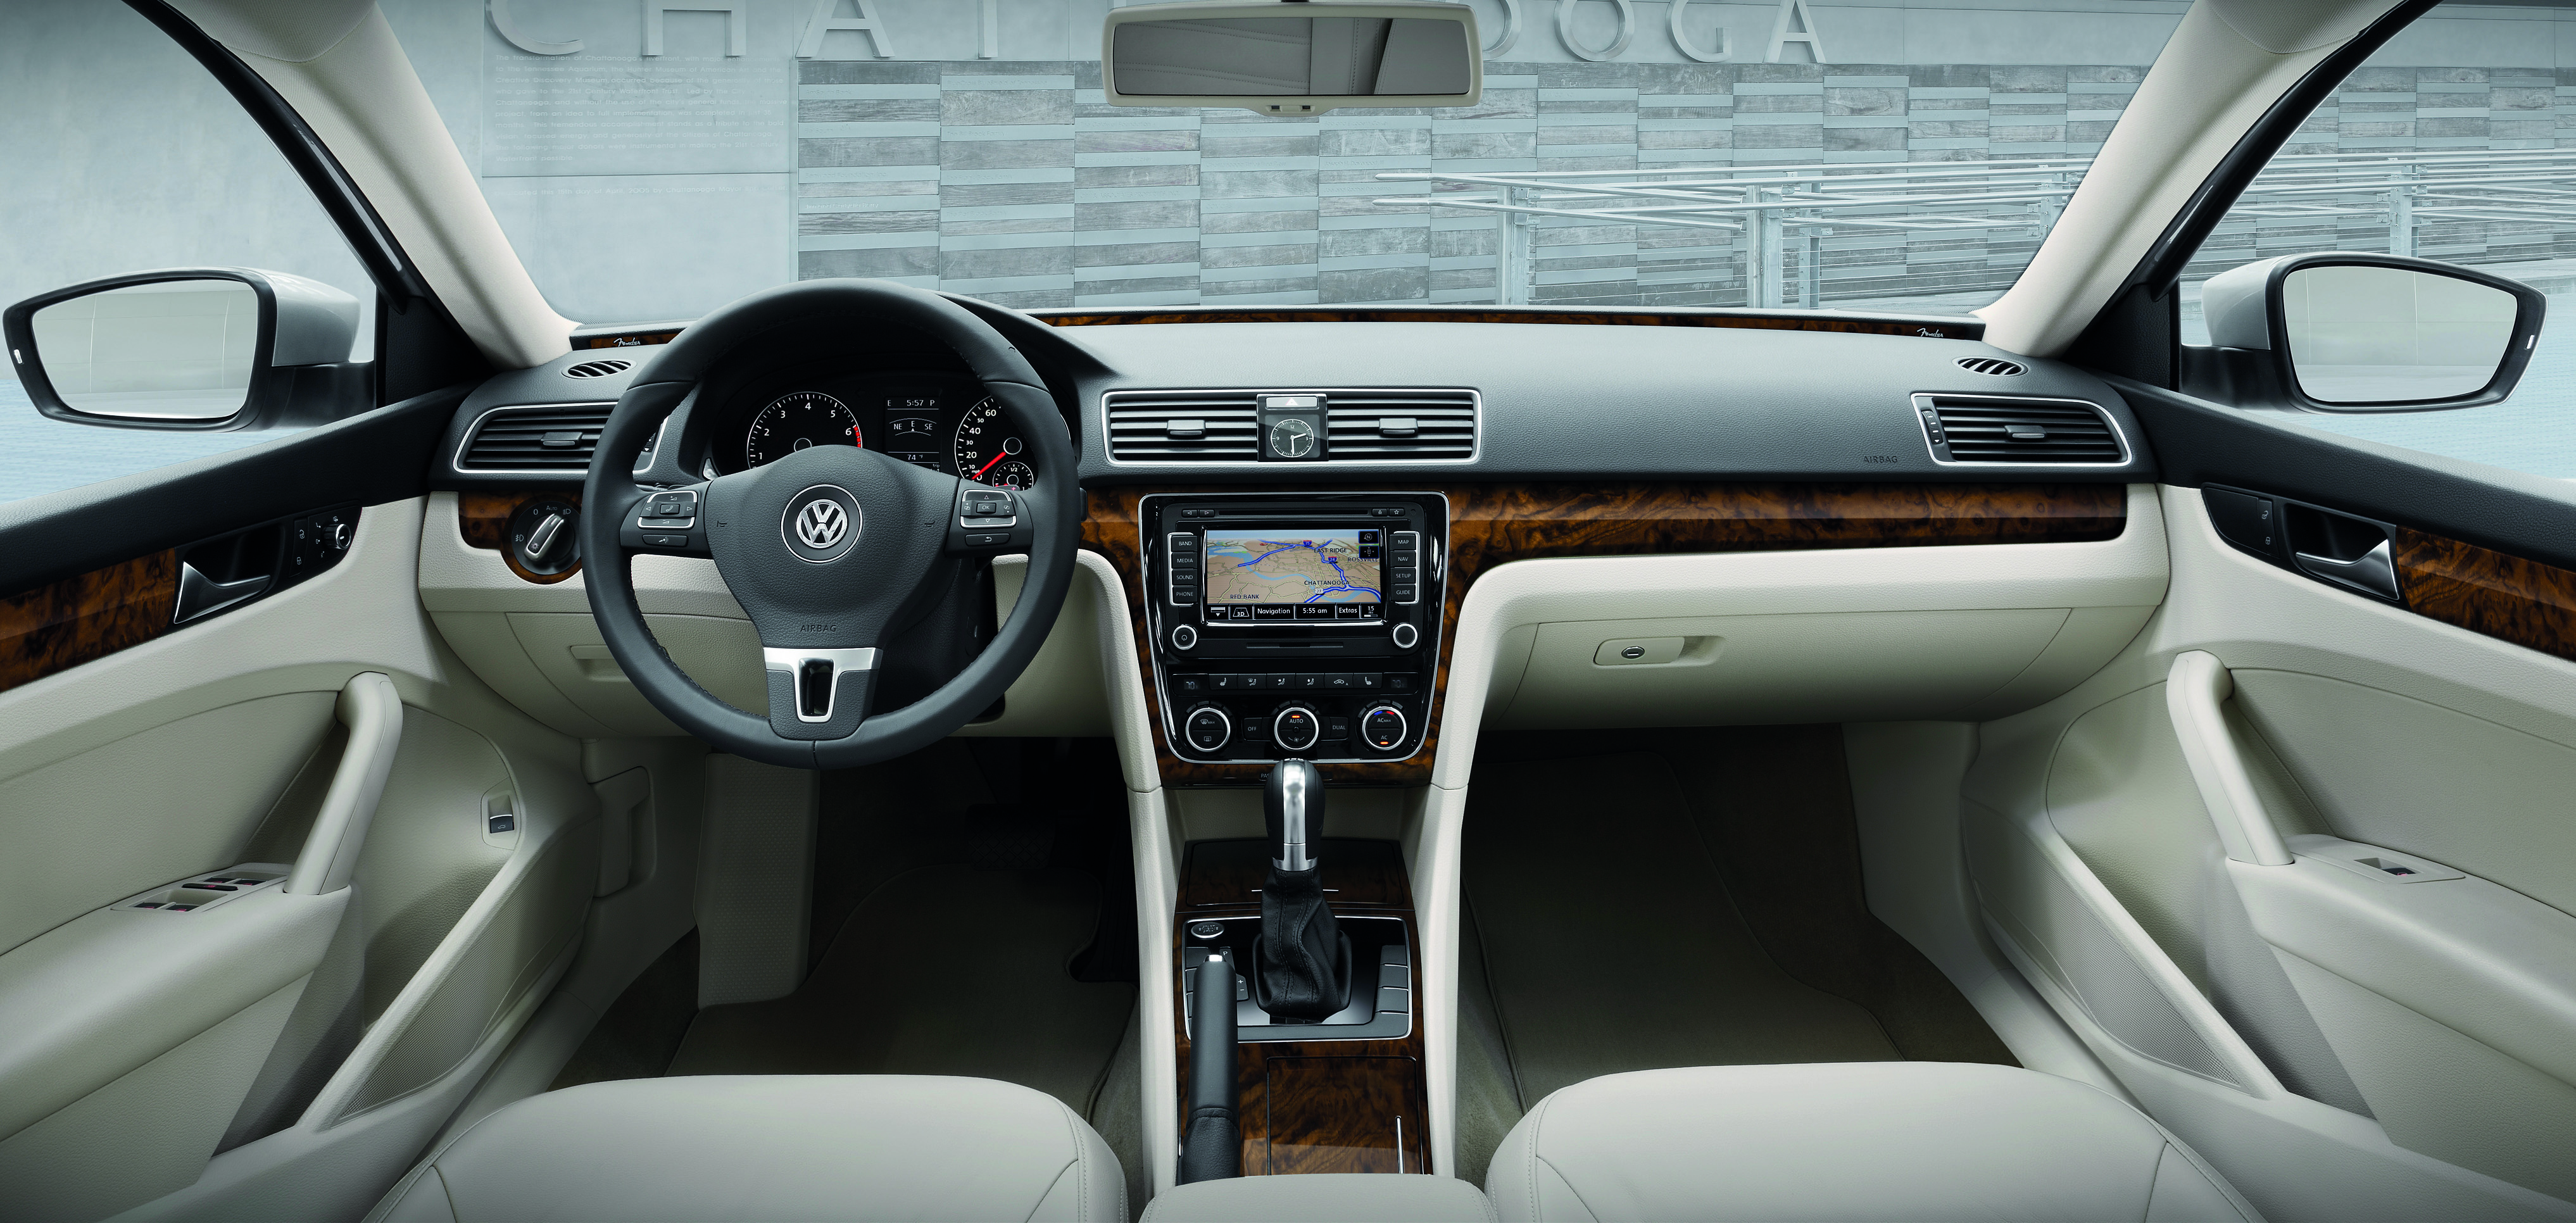 cc passat road inside looking reality vw surfaces interior